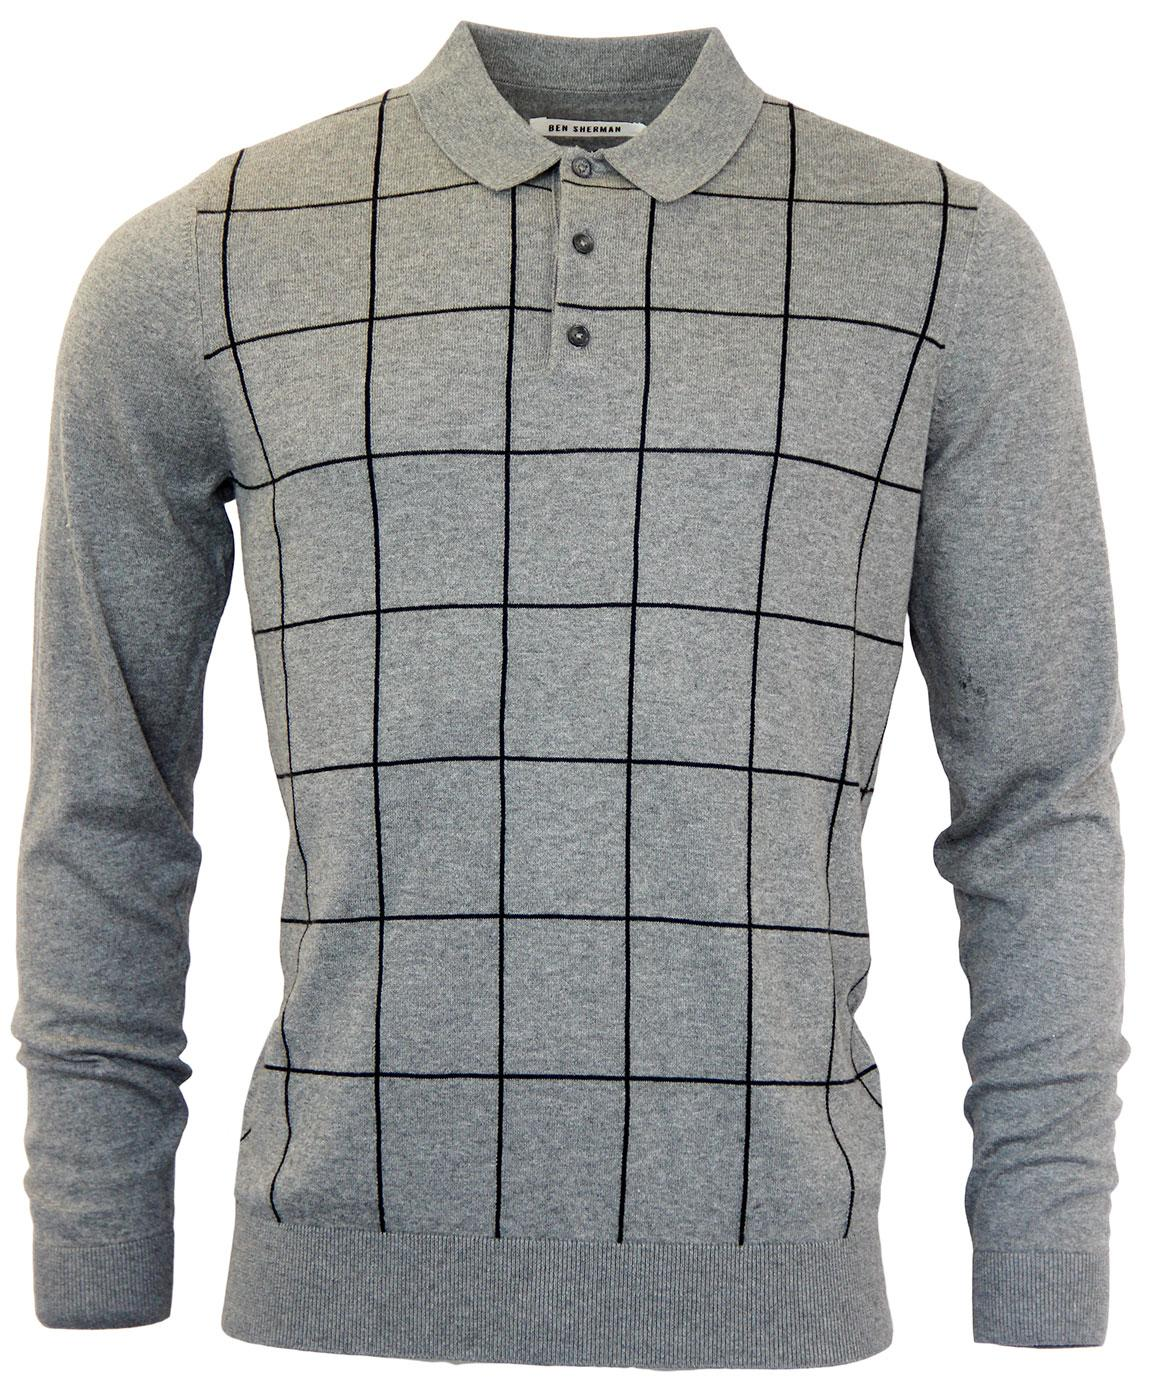 BEN SHERMAN Retro Window Pane Check Mod Polo